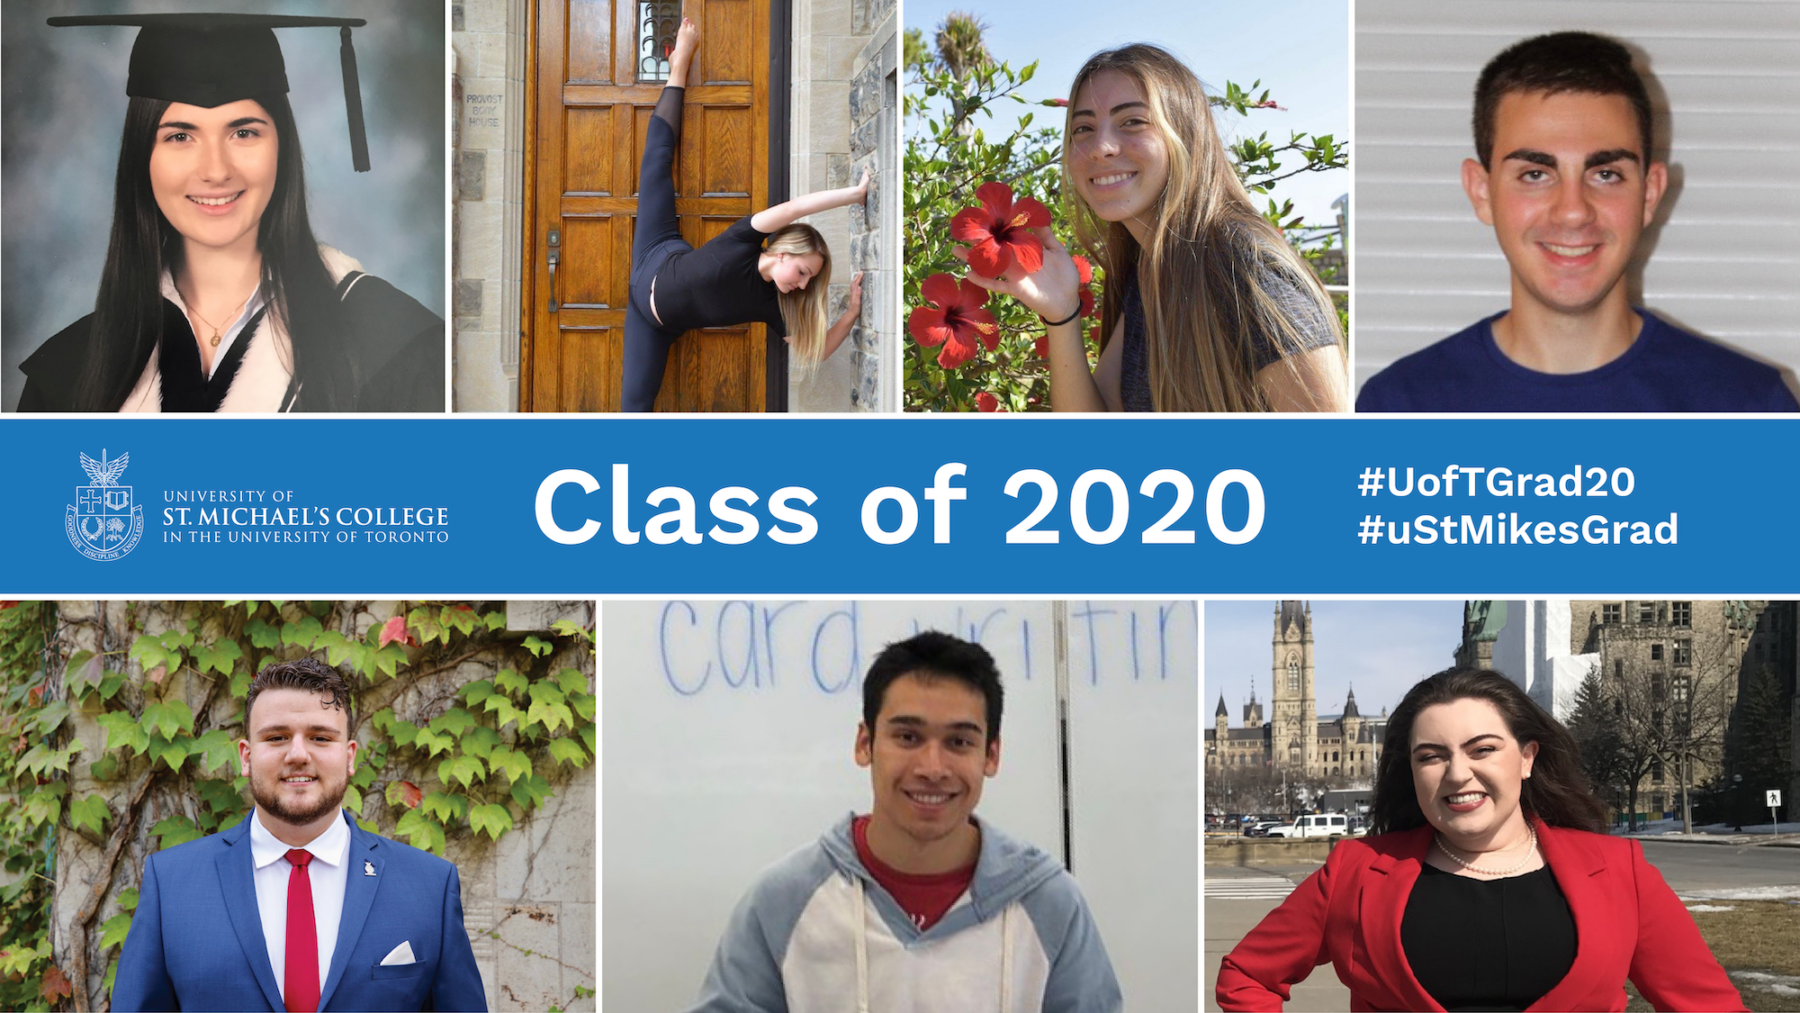 A decorative header for the story linked in the image caption about how the Class of 2020 will remember most about St. Michael's.